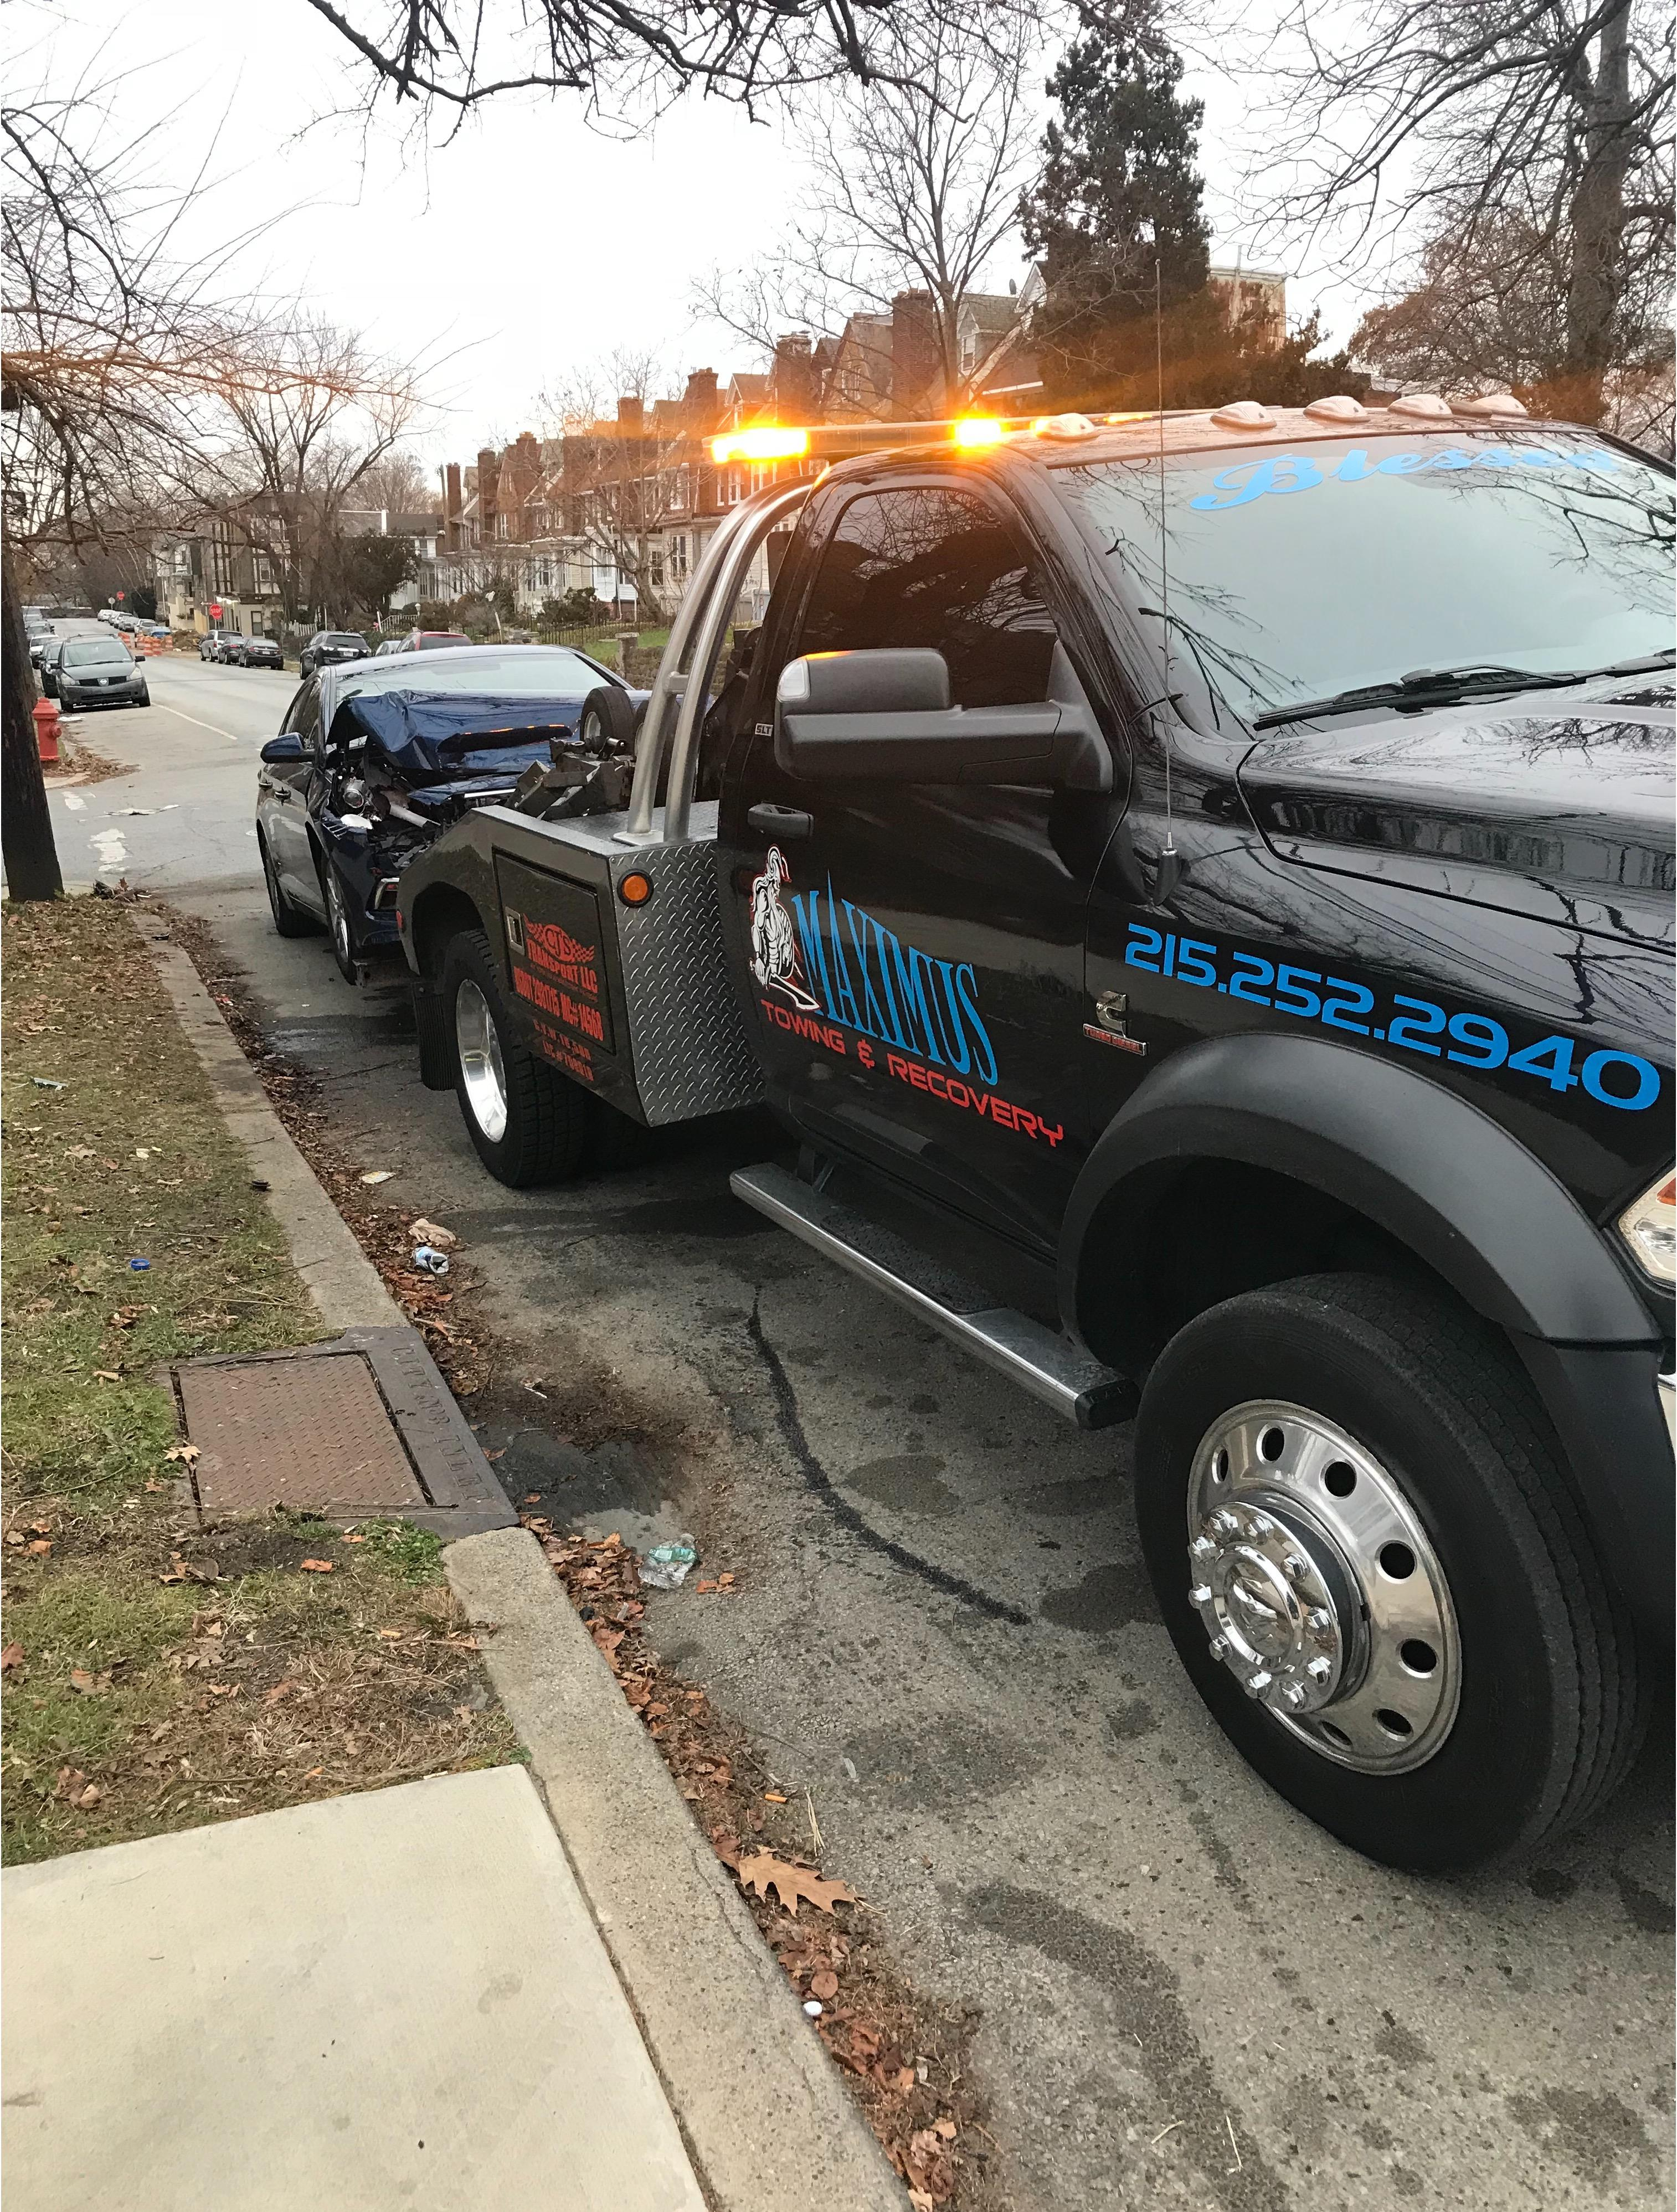 Cjs Tire and Auto Inc Towing Services in Philadelphia Pennsylvania